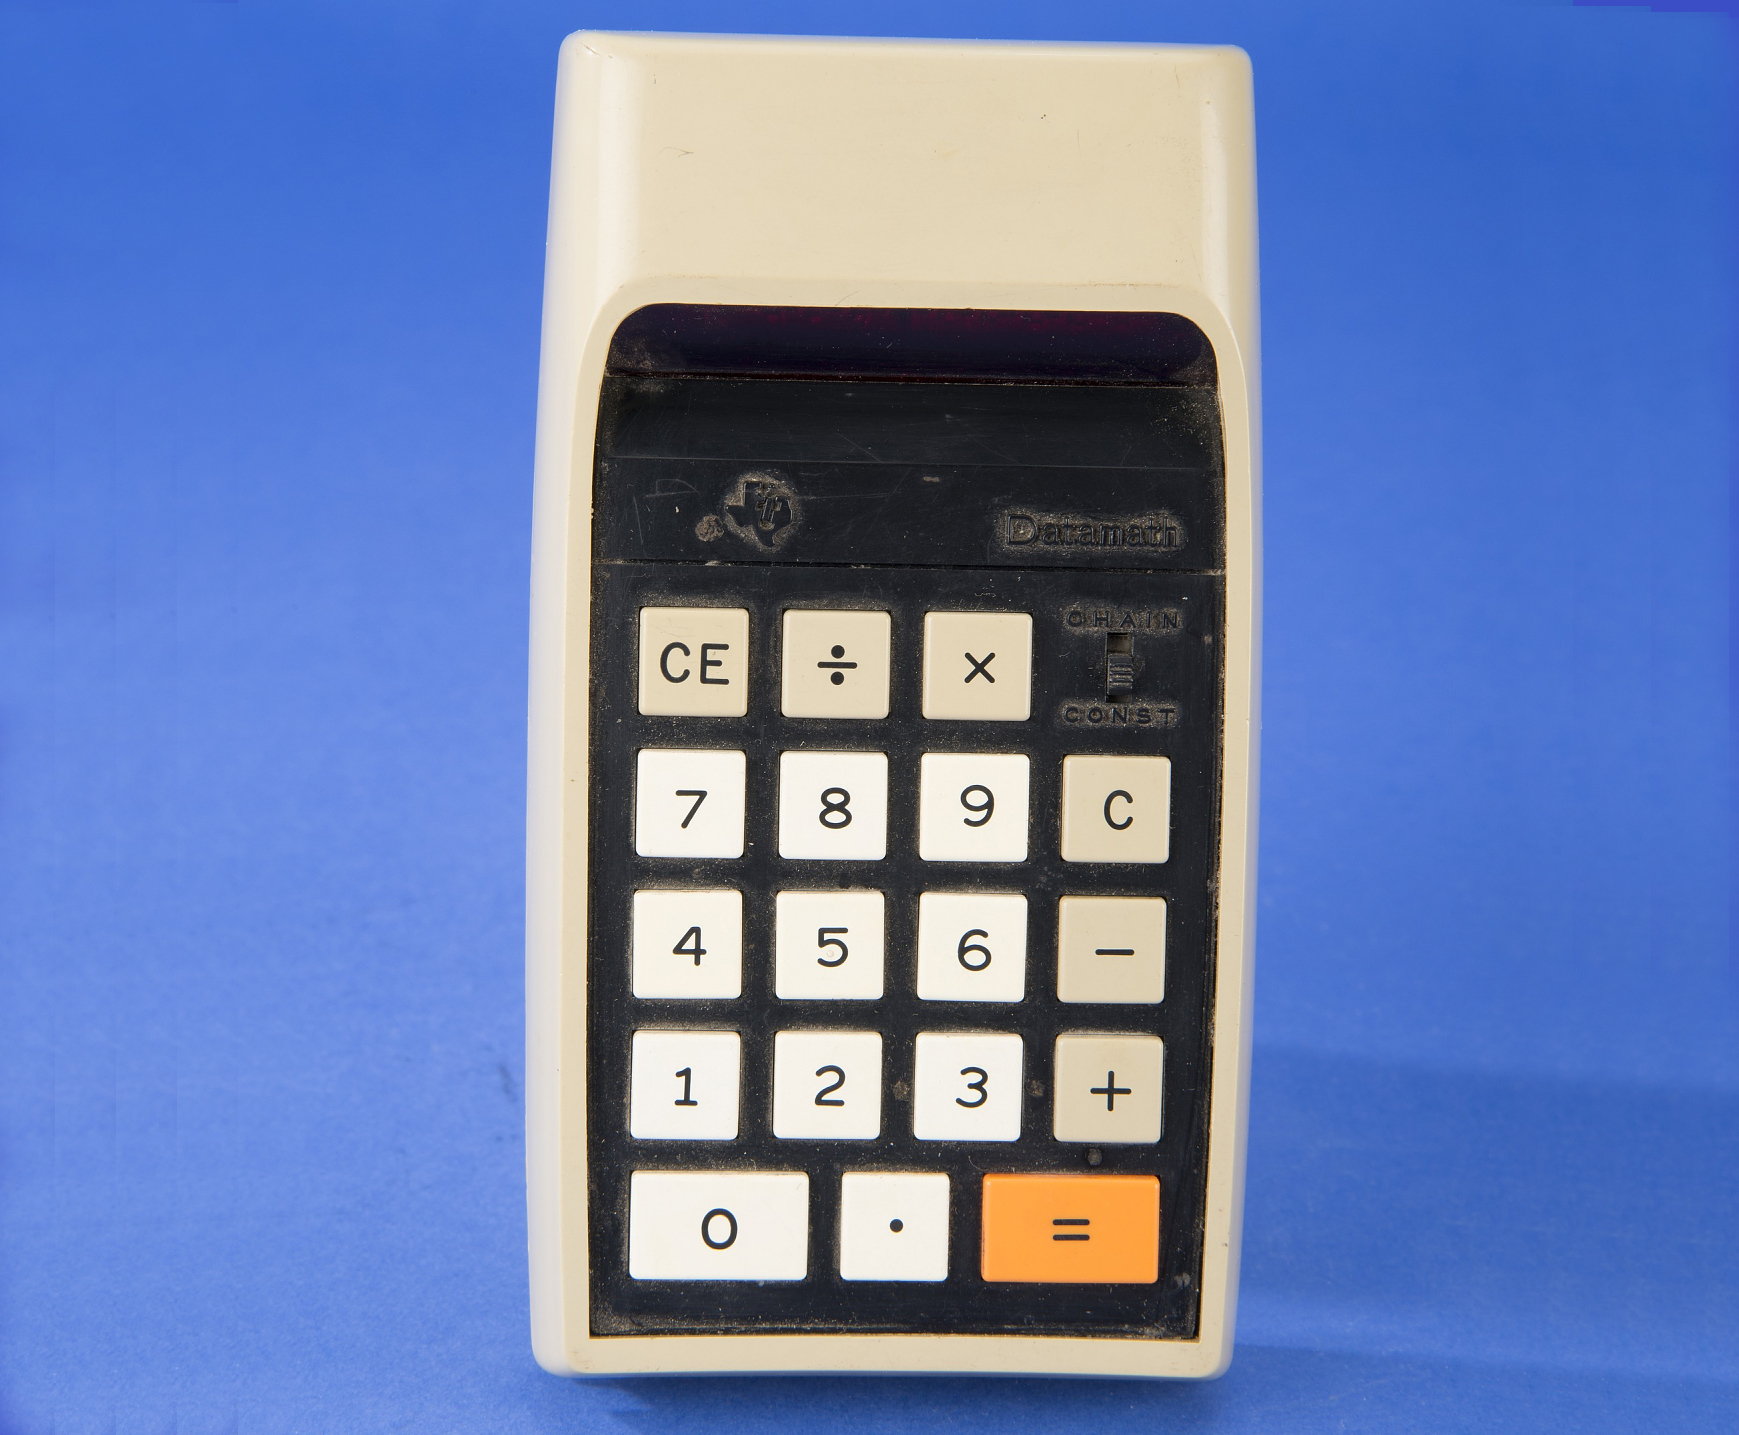 A collection of desktop electronic calculators in the Division of Medicine and Science at the National Museum of American Histor